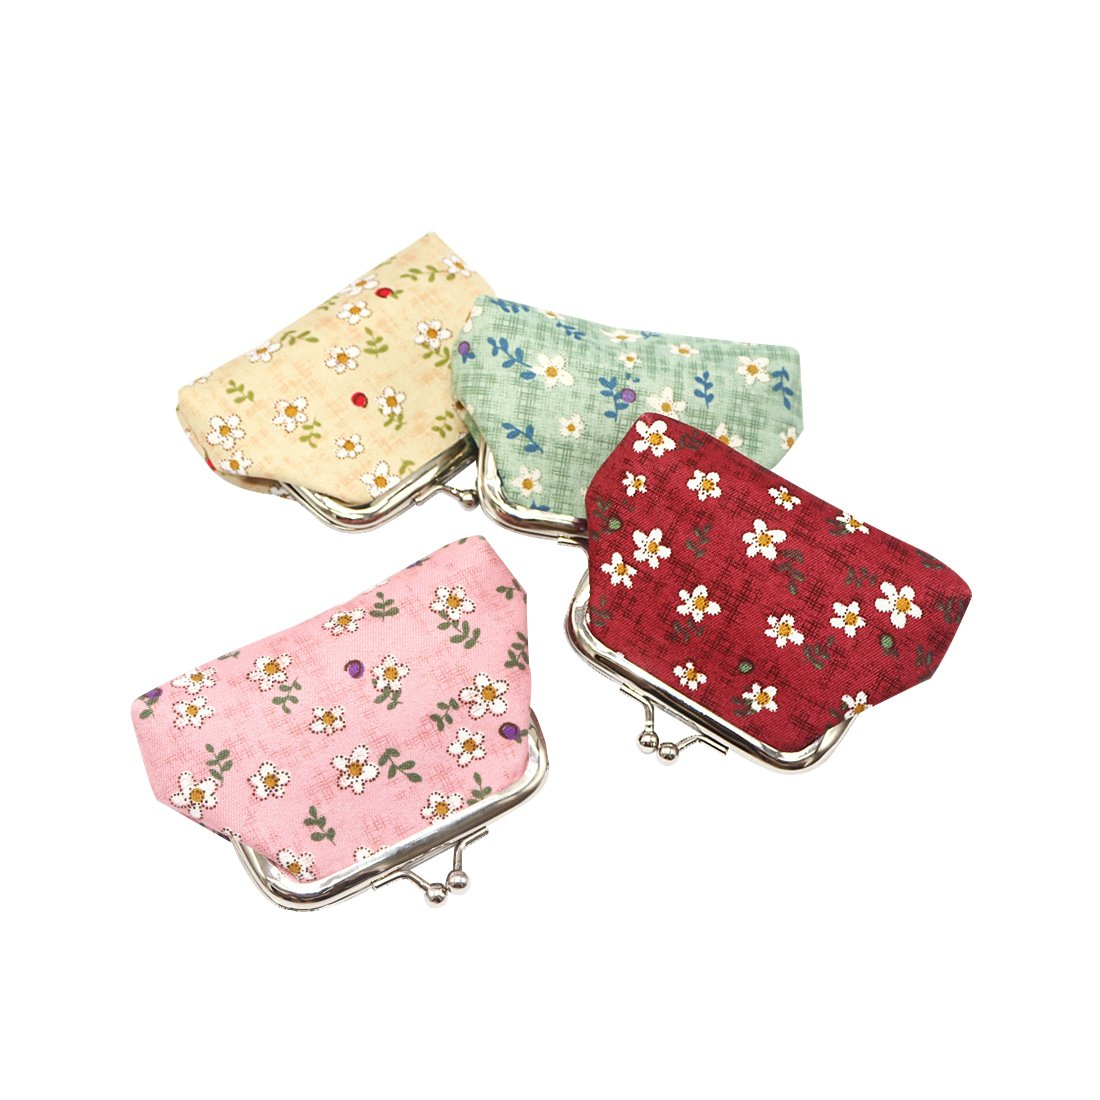 Oyachic 4 Pack Kisslock Coin Purse PU Change Pouch Mini Wallet with Clasp Closure Cute Animal Pattern Gifts for Women Girls (Alpaca and cactus) CC-C60042-CN